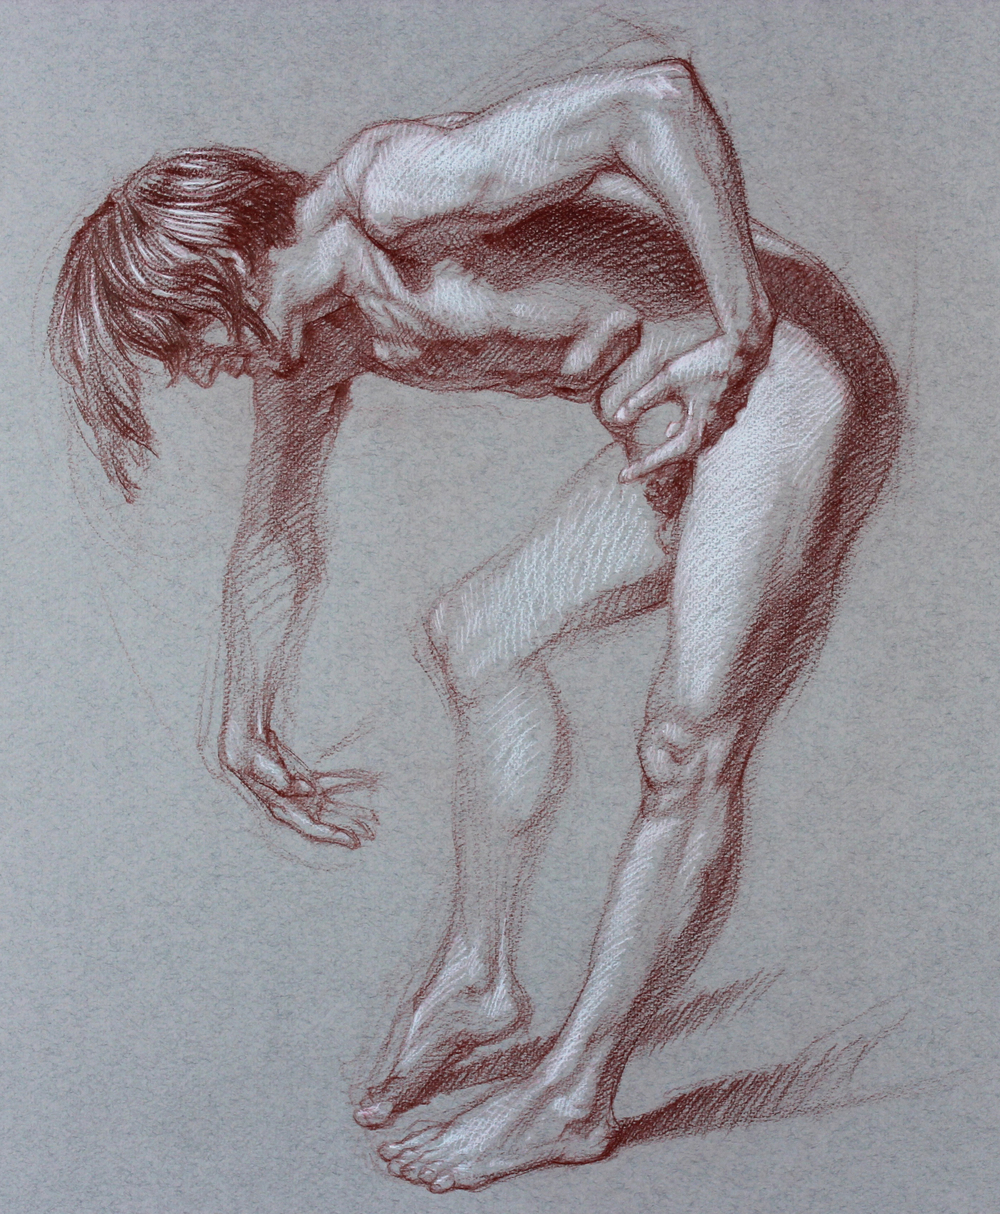 Figure Study of Vincent / Red Pencil on Paper / 16x19 / 2016 / Click for full image